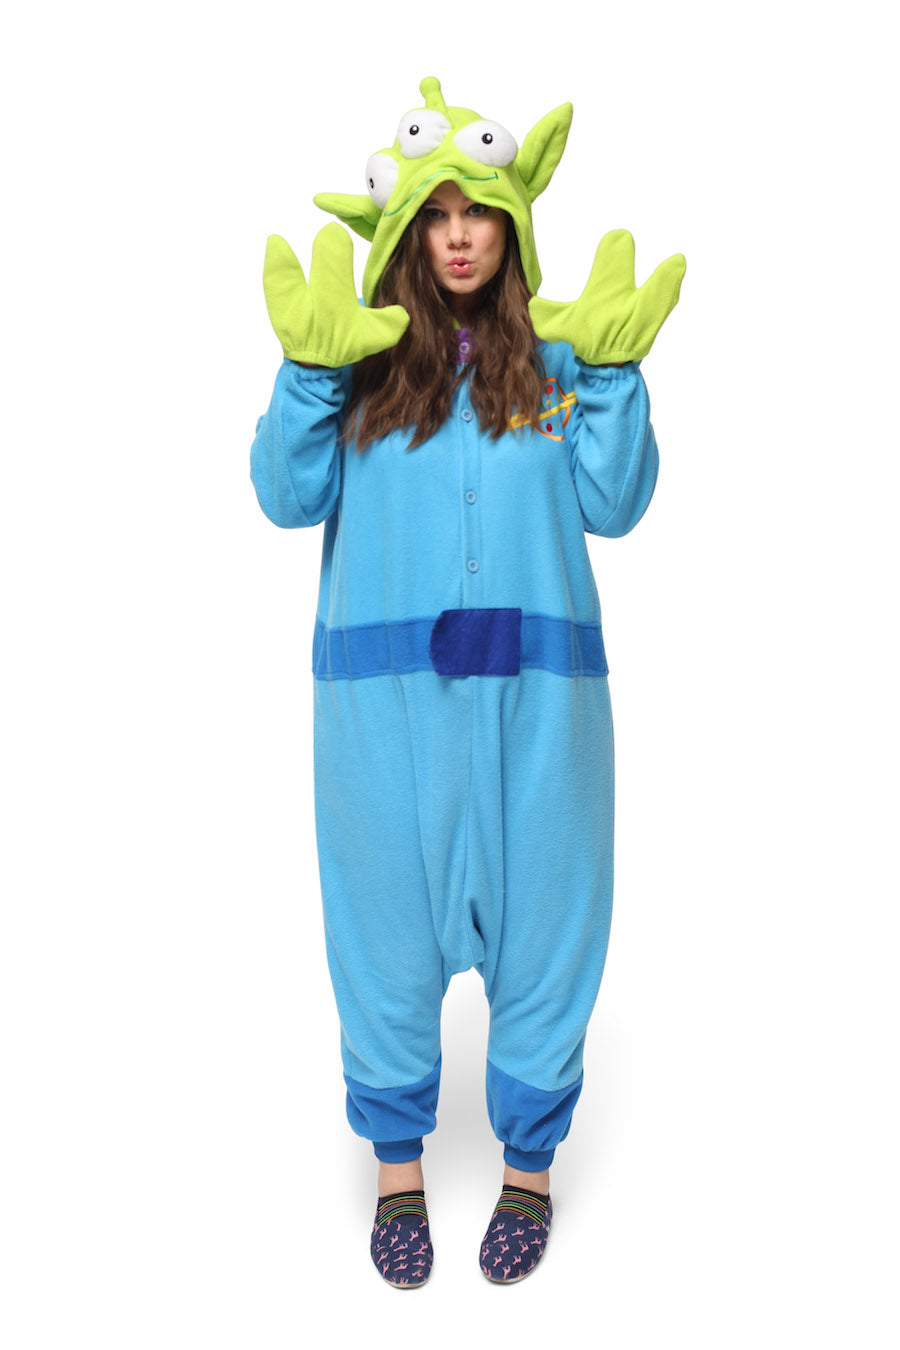 Little Green Man Character Kigurumi Adult Onesie Costume Pajamas Alien Blue Main